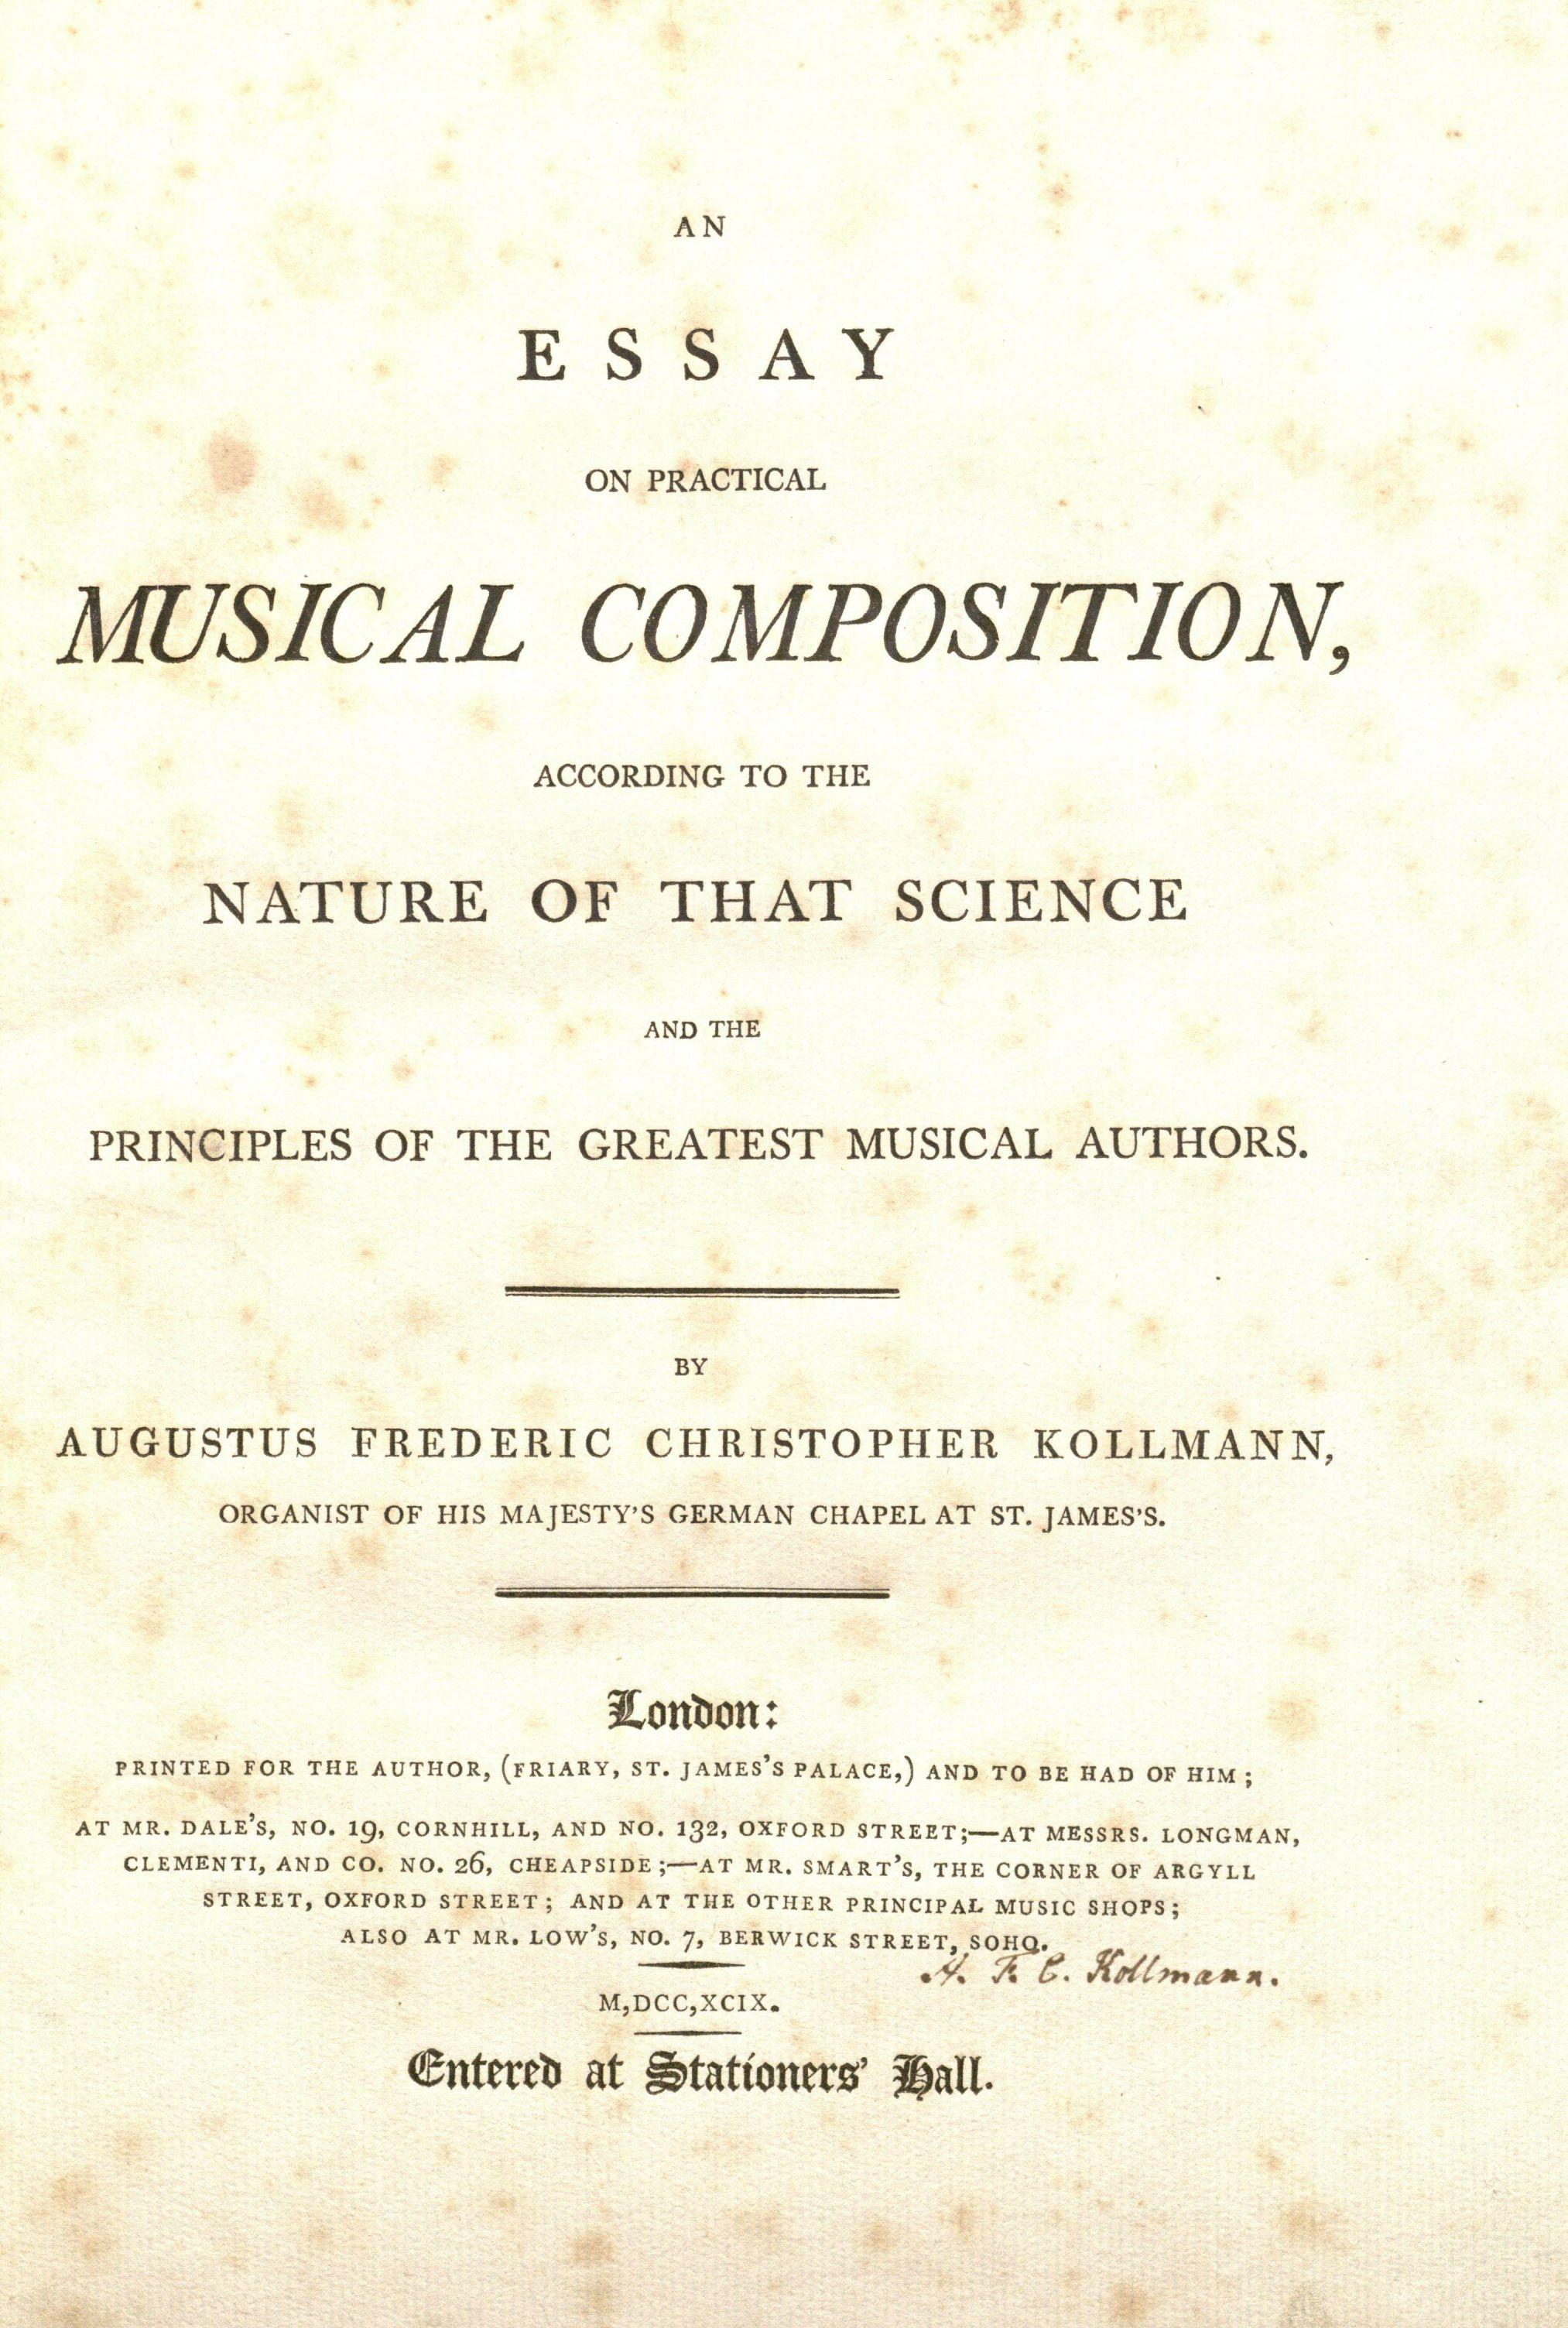 composition god save the king music from the british royal kollmann us frederic christopher 1756 1829 an essay on practical musical composition london author 1799 title page